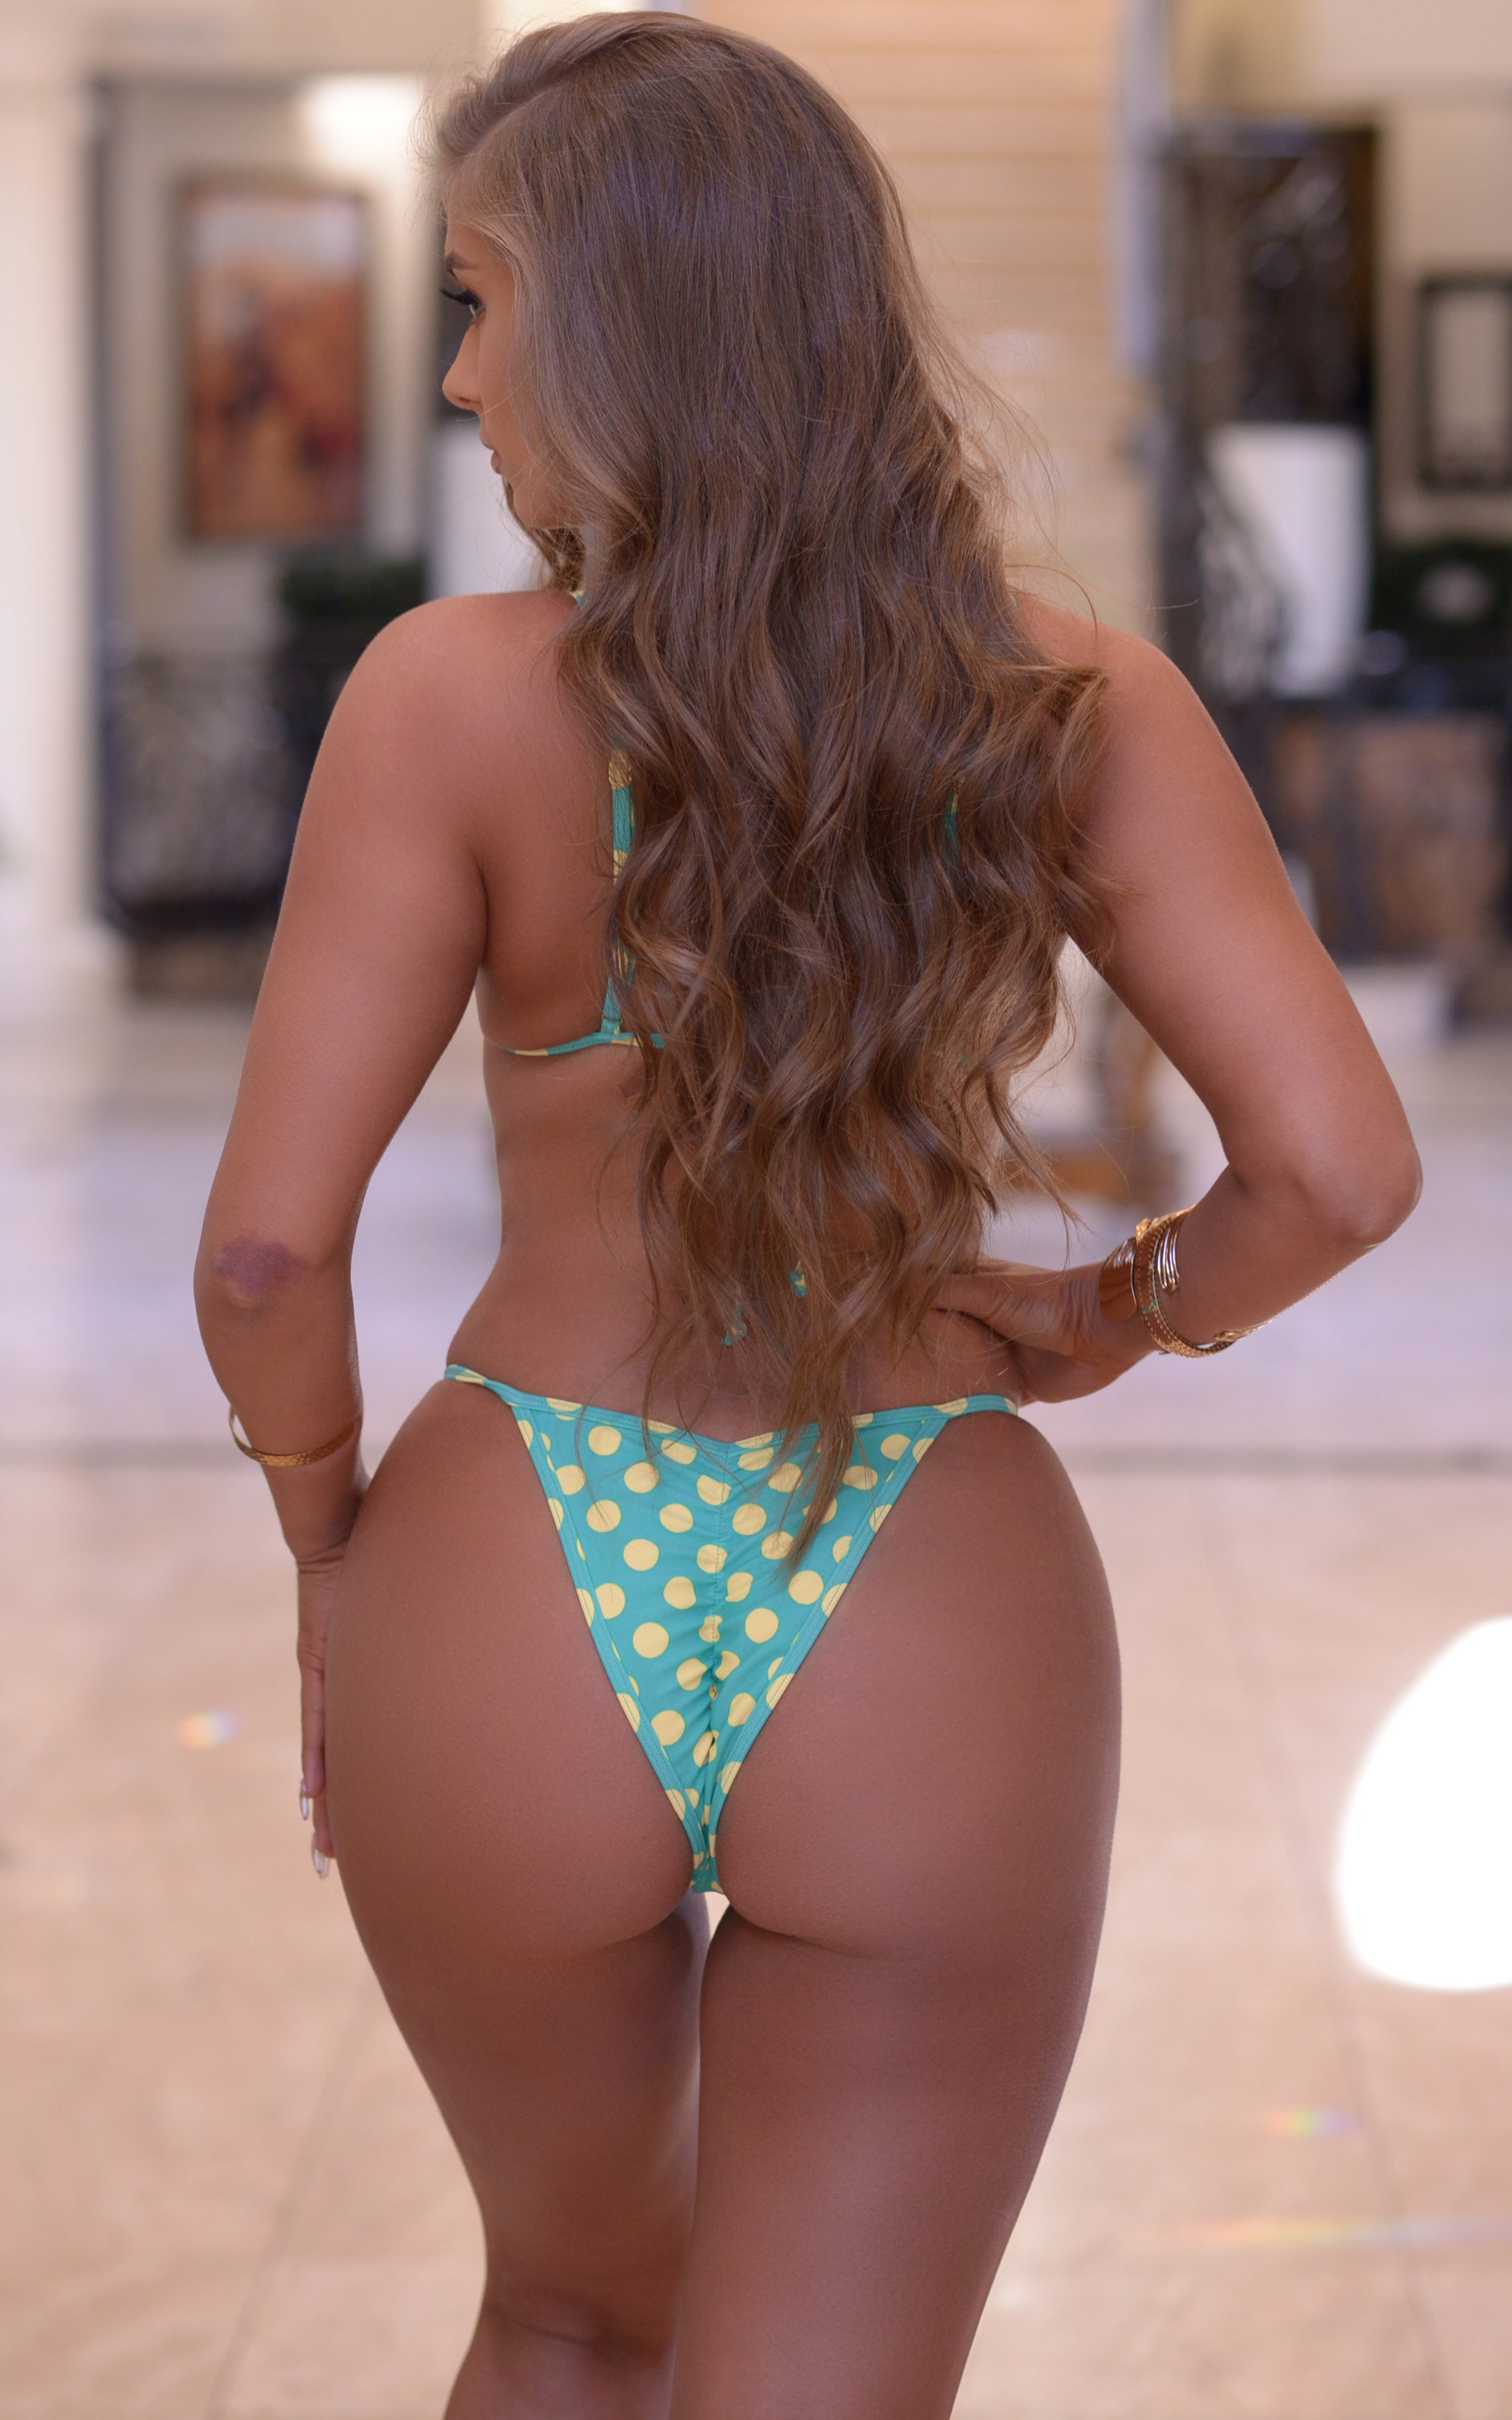 Sorrento: High Cut Bathing Suit in Mint/Yellow Polka Dots - Chynna Dolls Swimwear